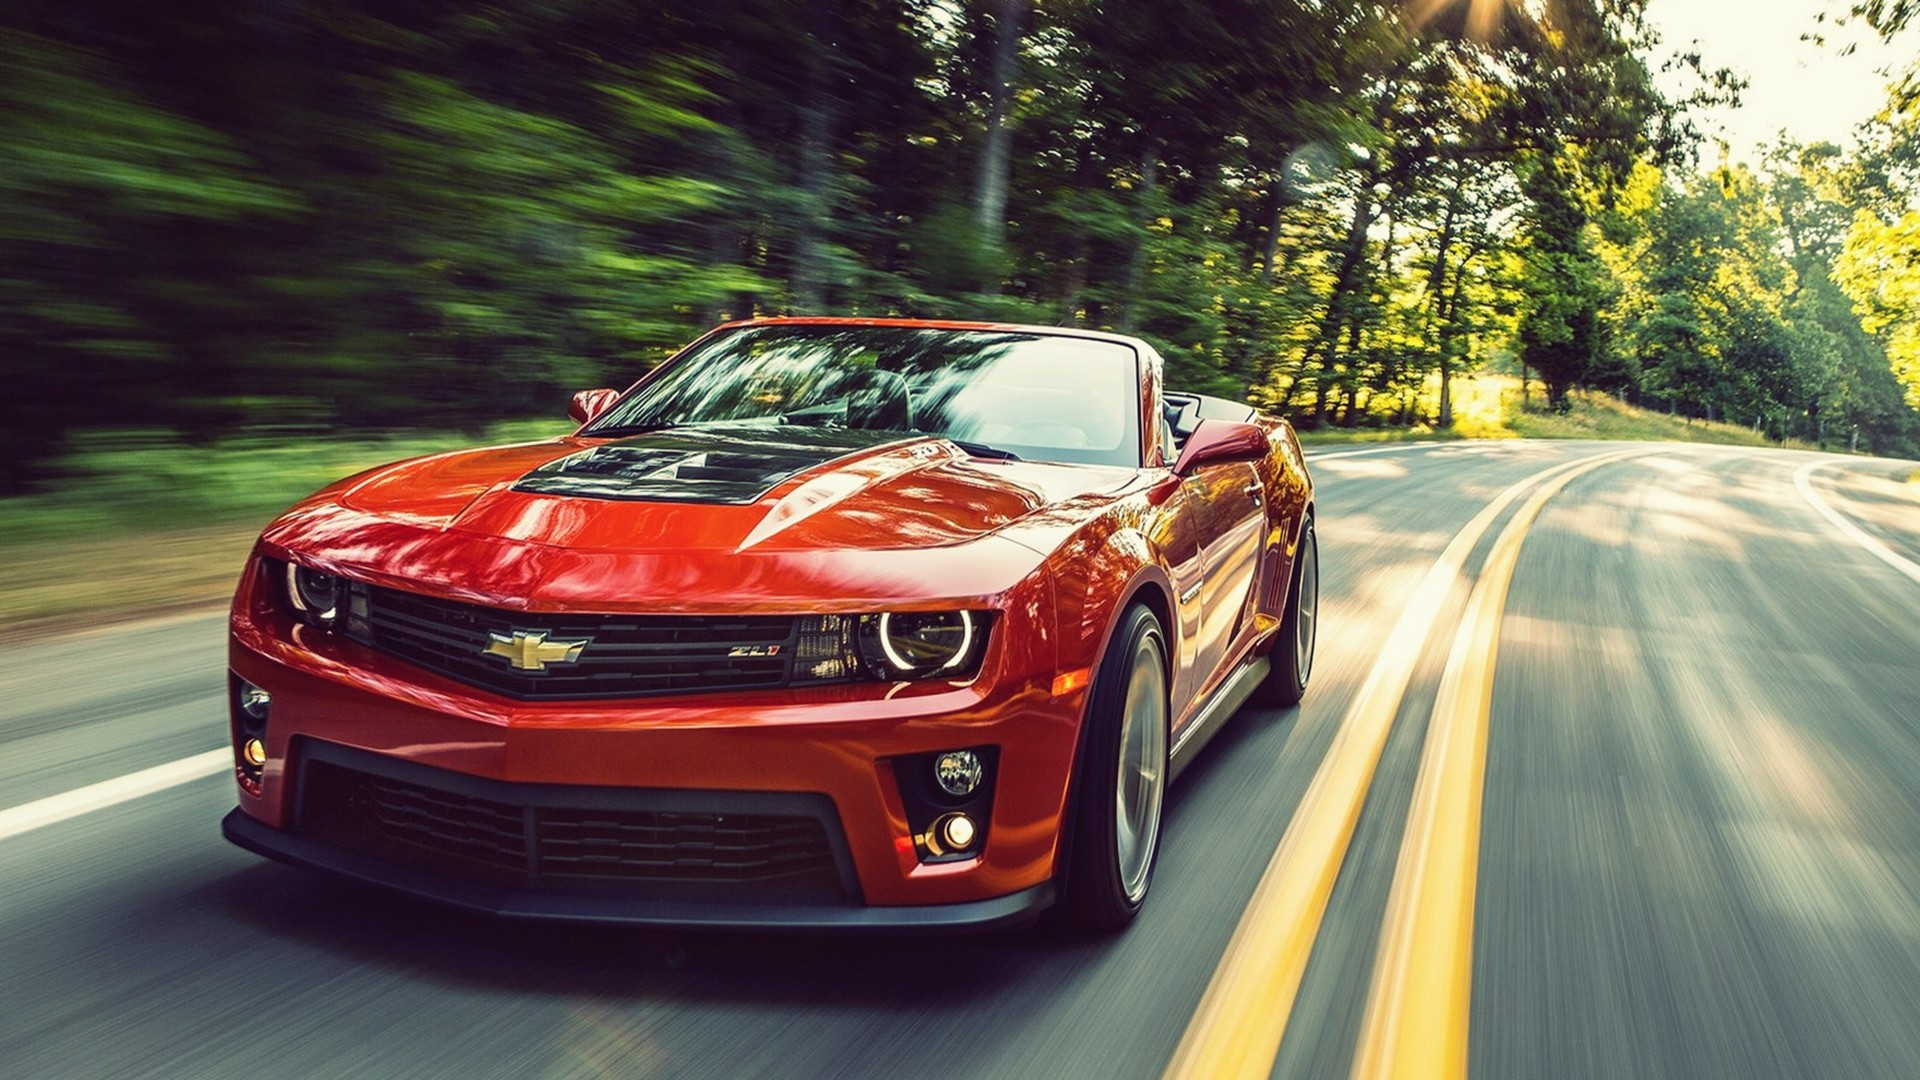 28 Chevrolet Camaro Zl1 Hd Wallpapers Backgrounds